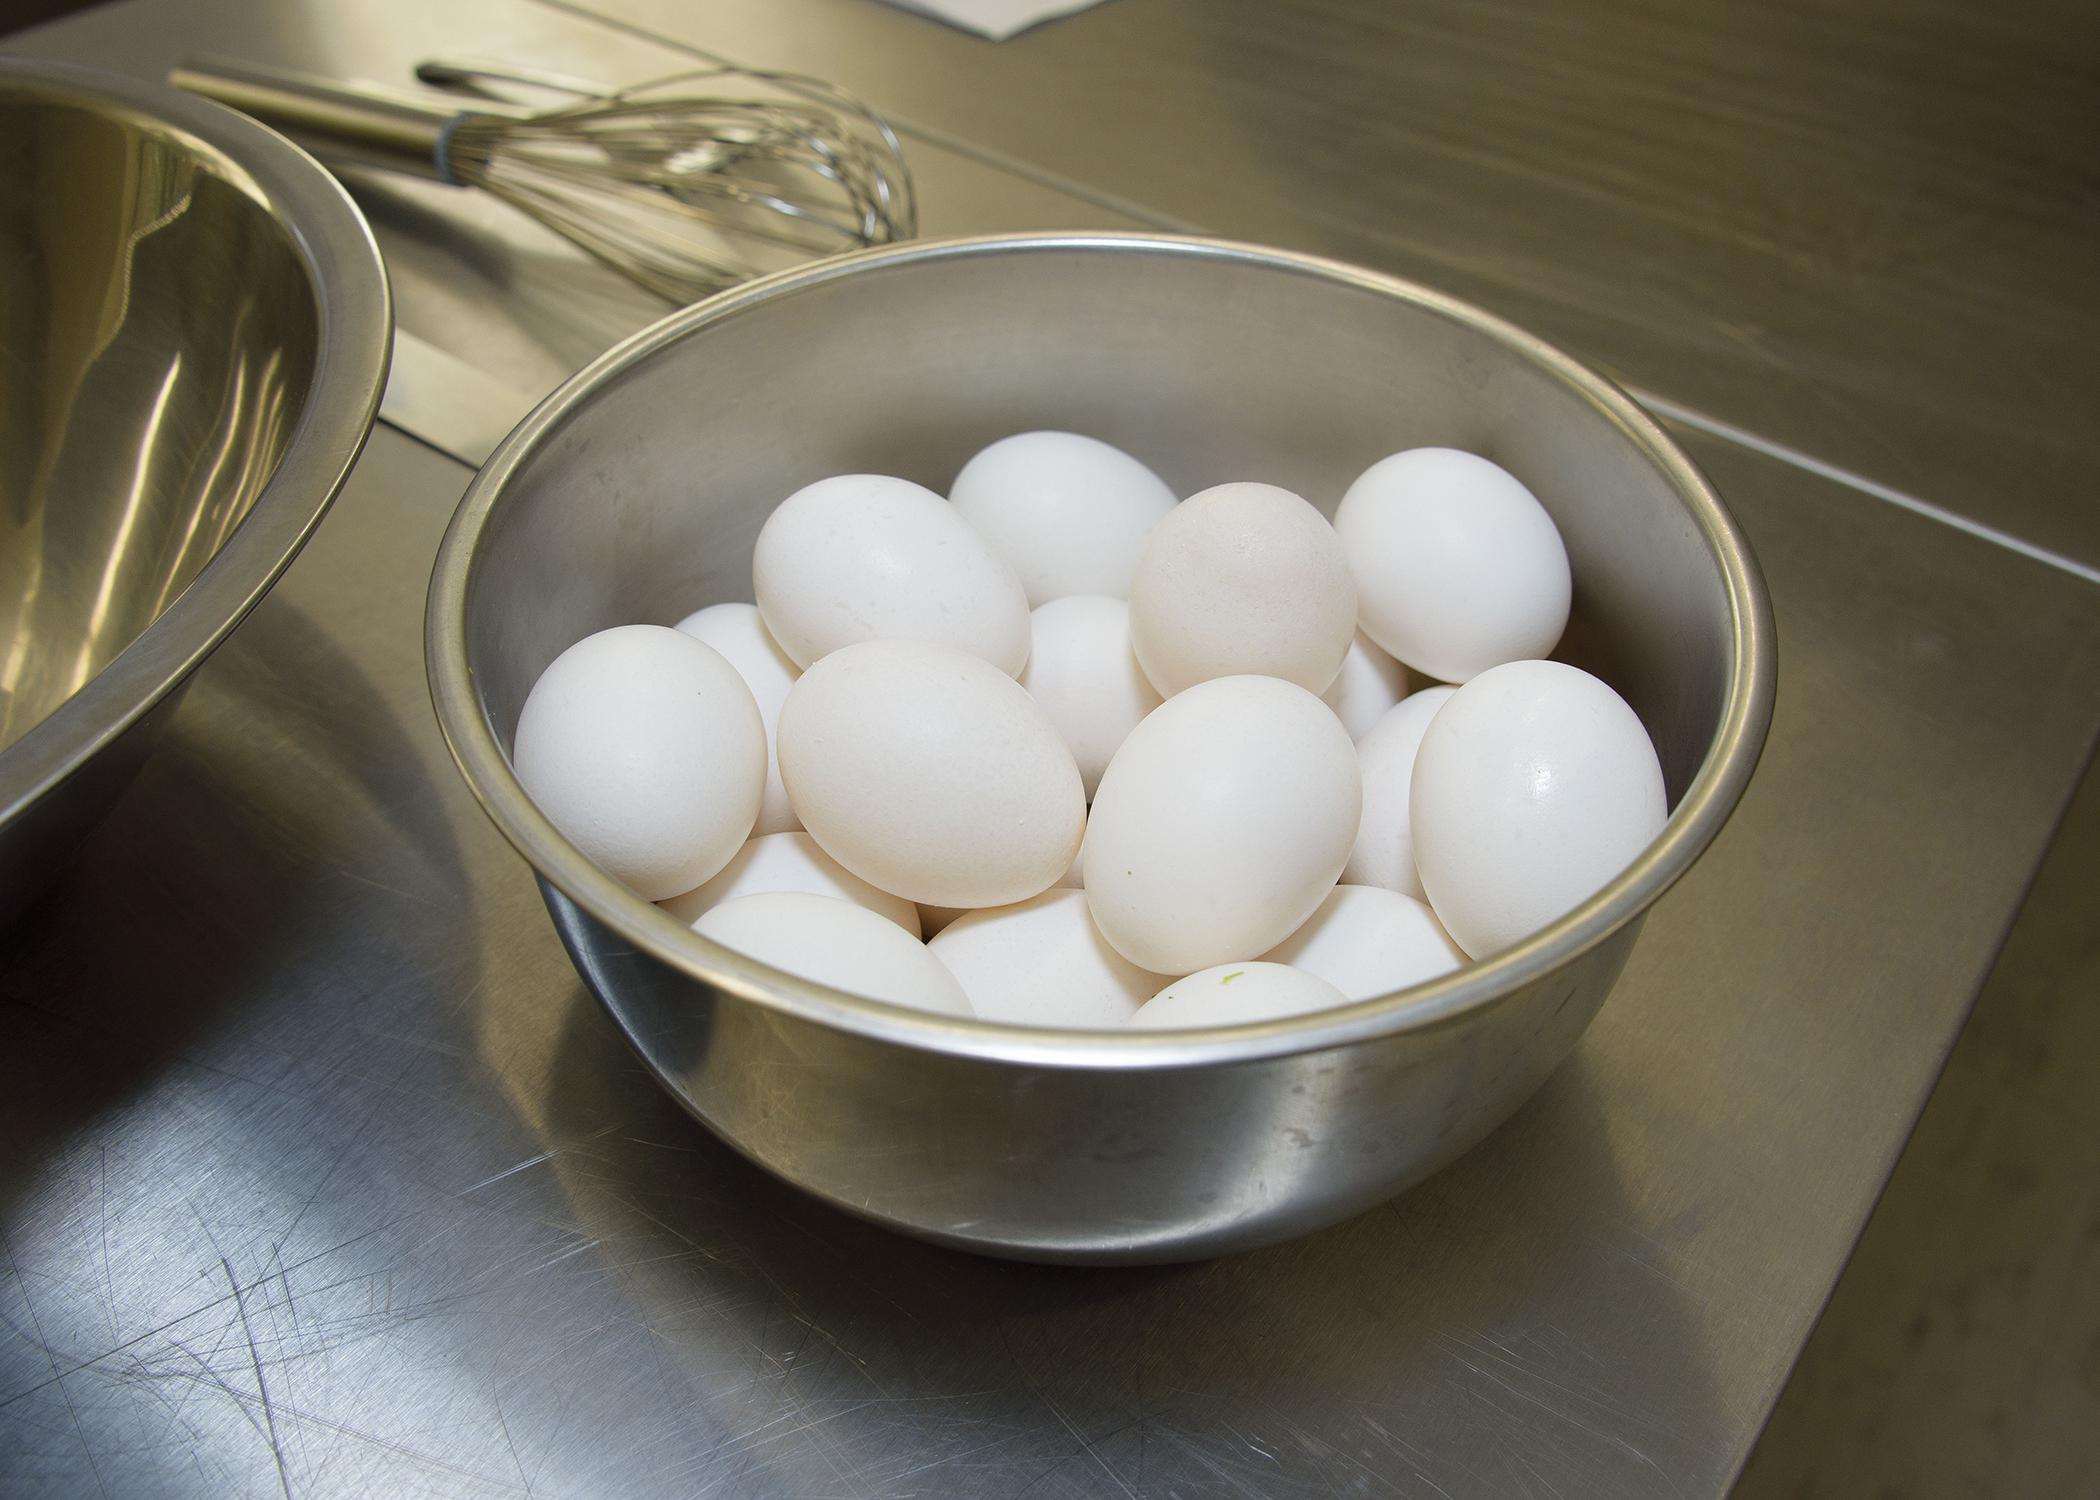 Several eggs sit in a bowl on a kitchen counter.